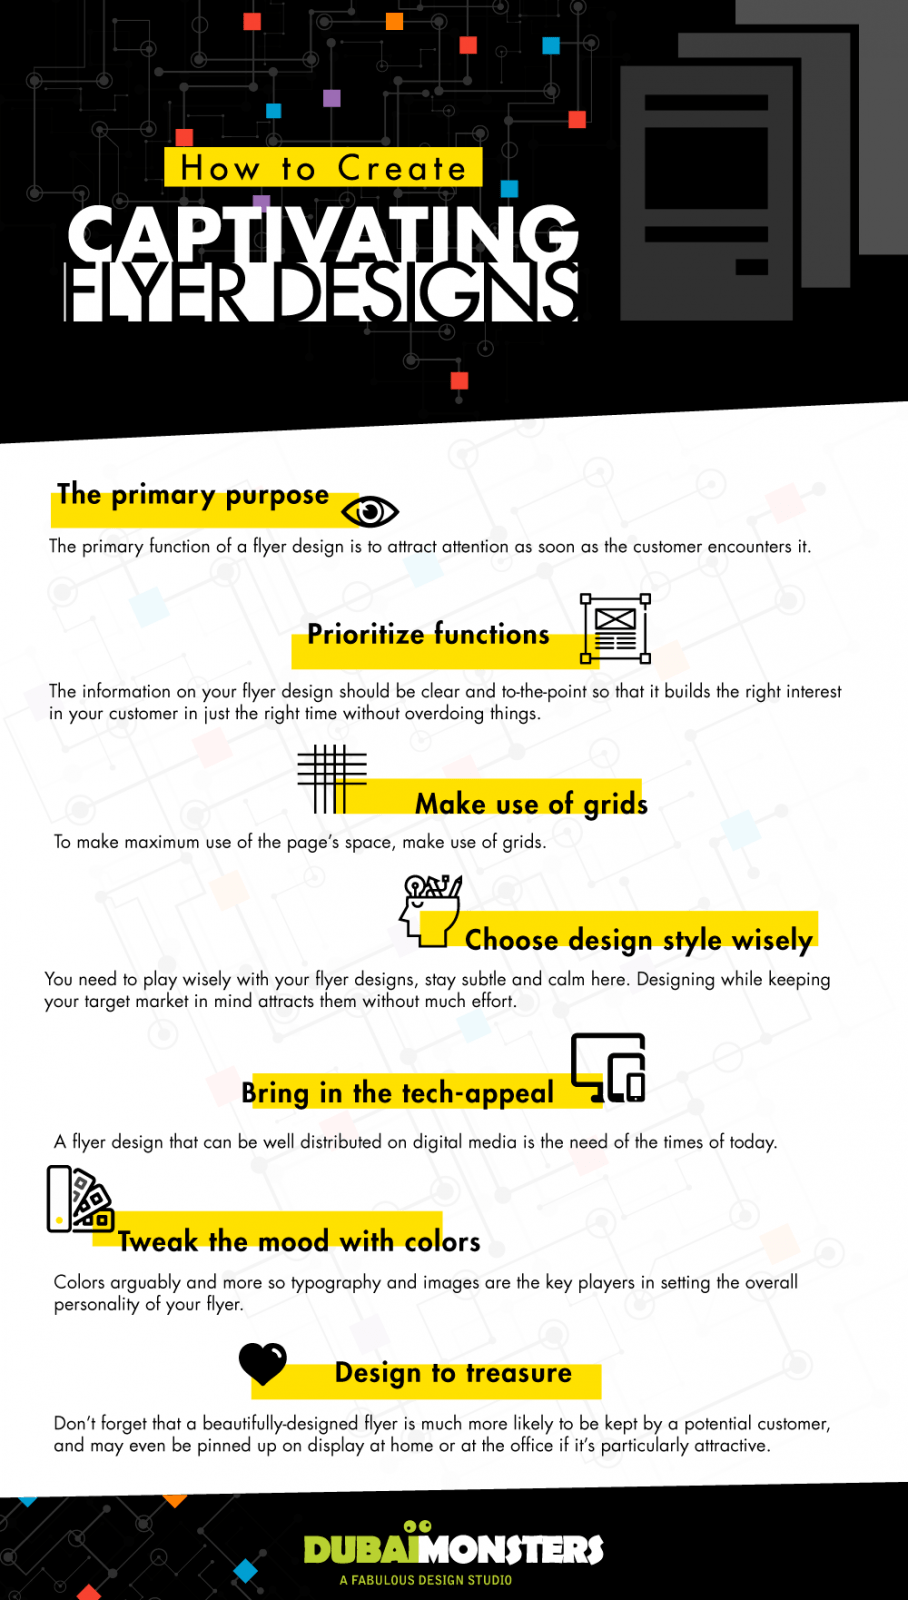 infographic_how-to-create-captivating-flyer-designs-1